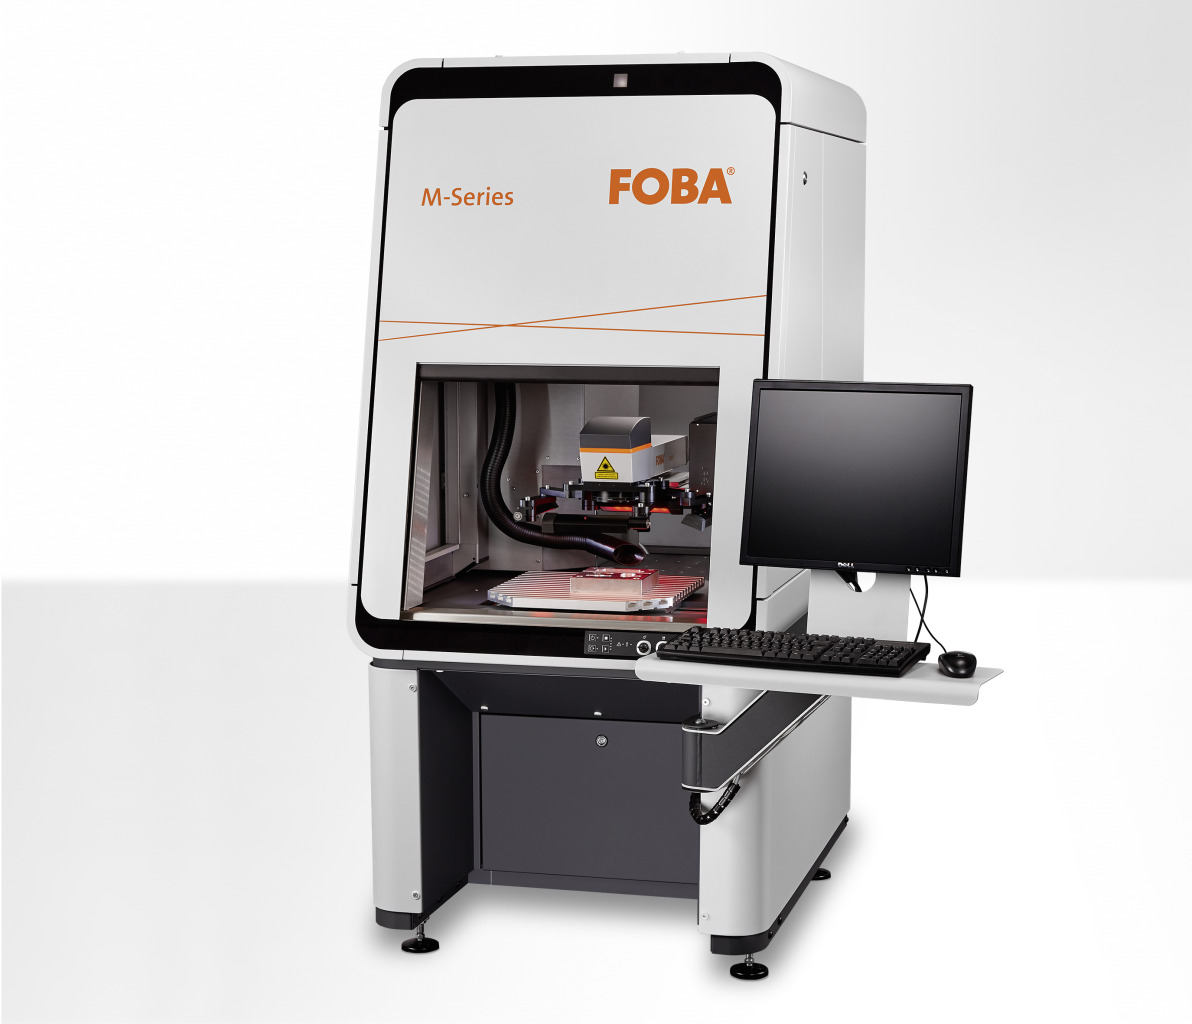 FOBA showcasing at Intec and MD&M West